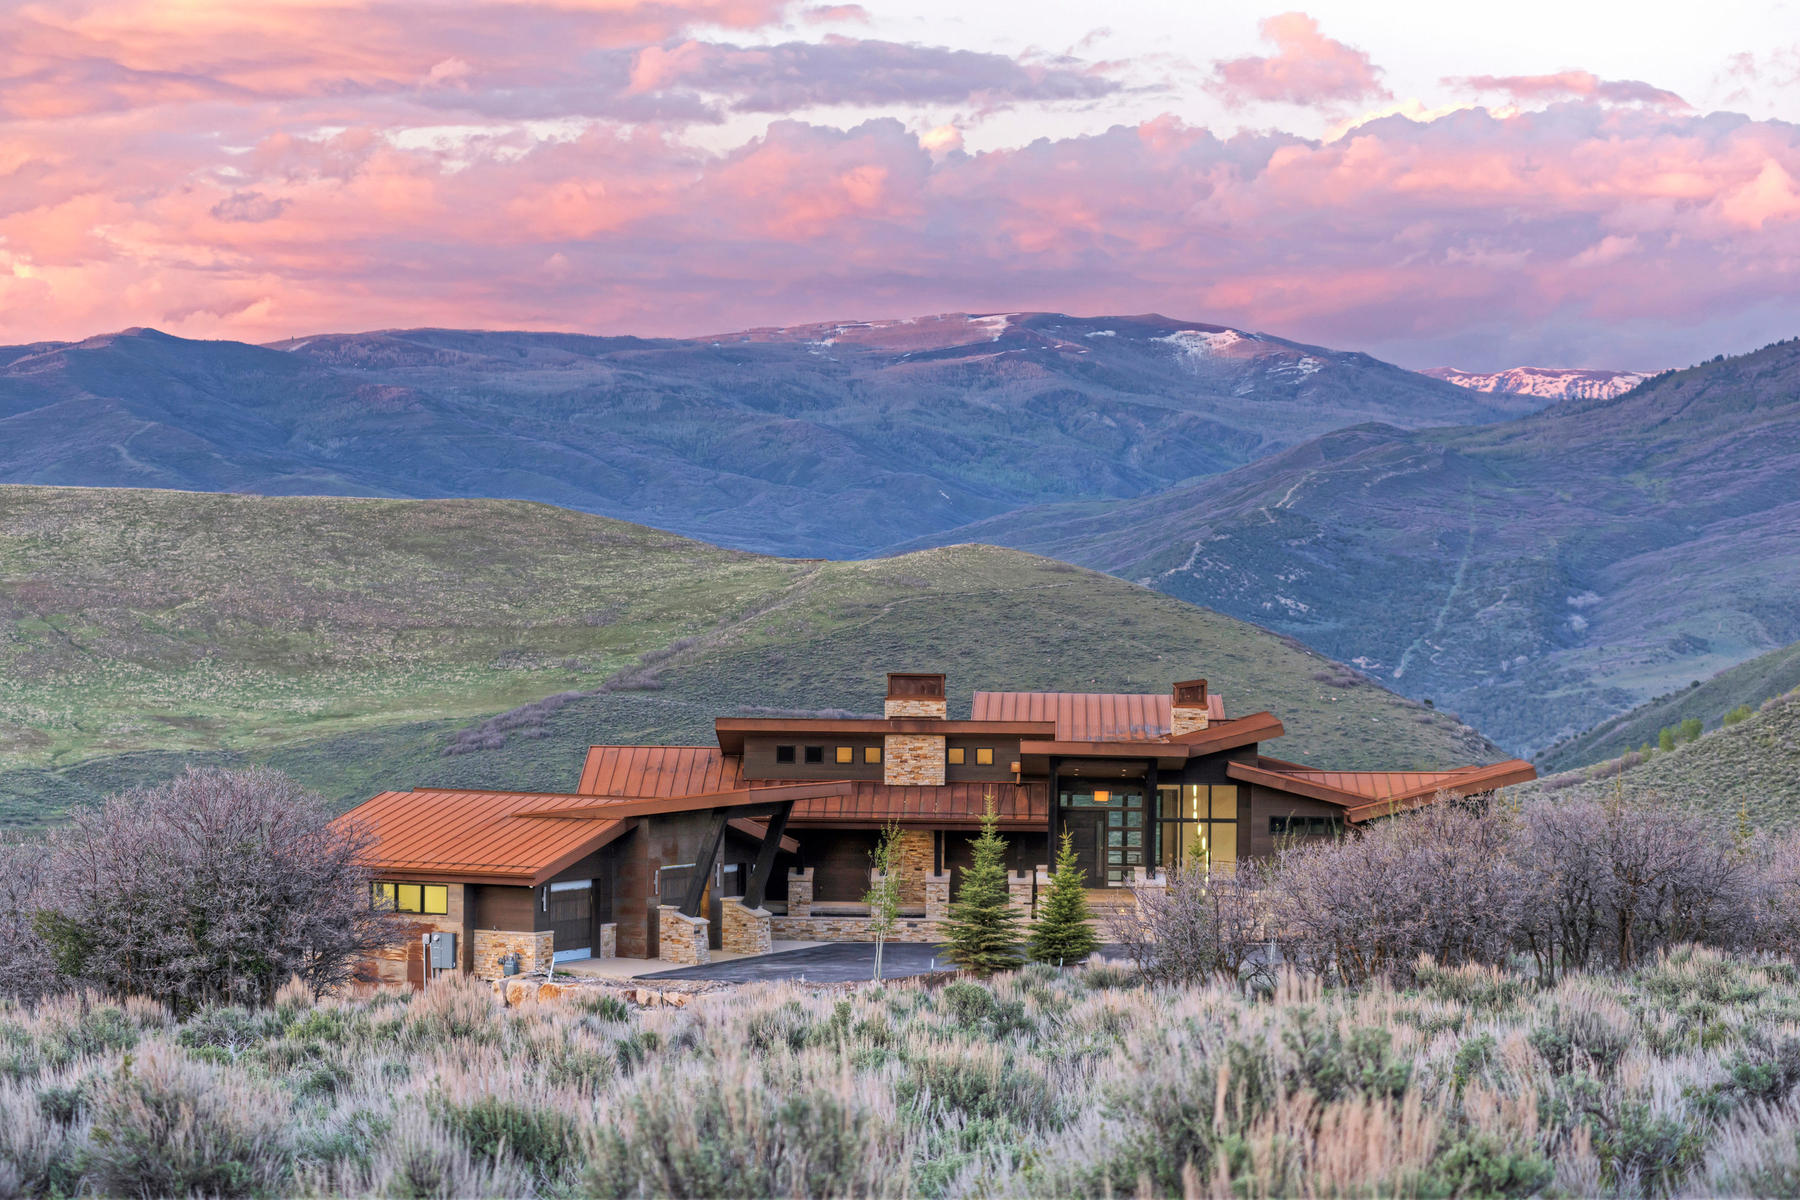 Single Family Home for Sale at Spectacular New Construction Home with Panoramic Views protected by Open Space! 3931 Aspen Camp Loop Park City, Utah 84098 United States